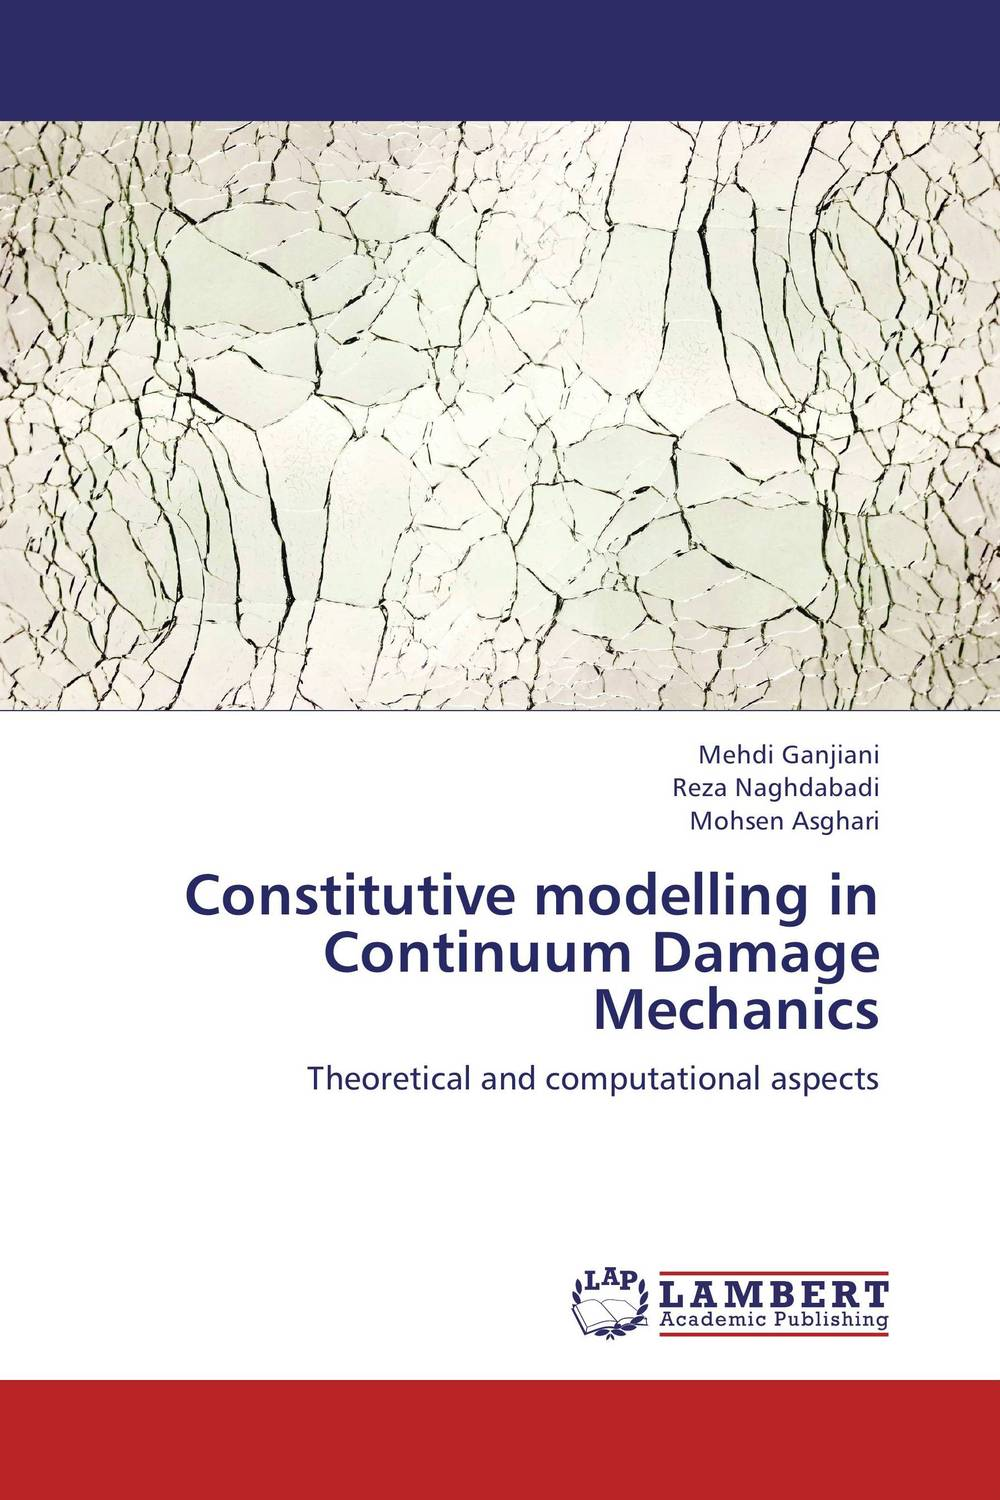 Constitutive modelling in Continuum Damage Mechanics constitutive modeling of frp confined concrete from damage mechanics